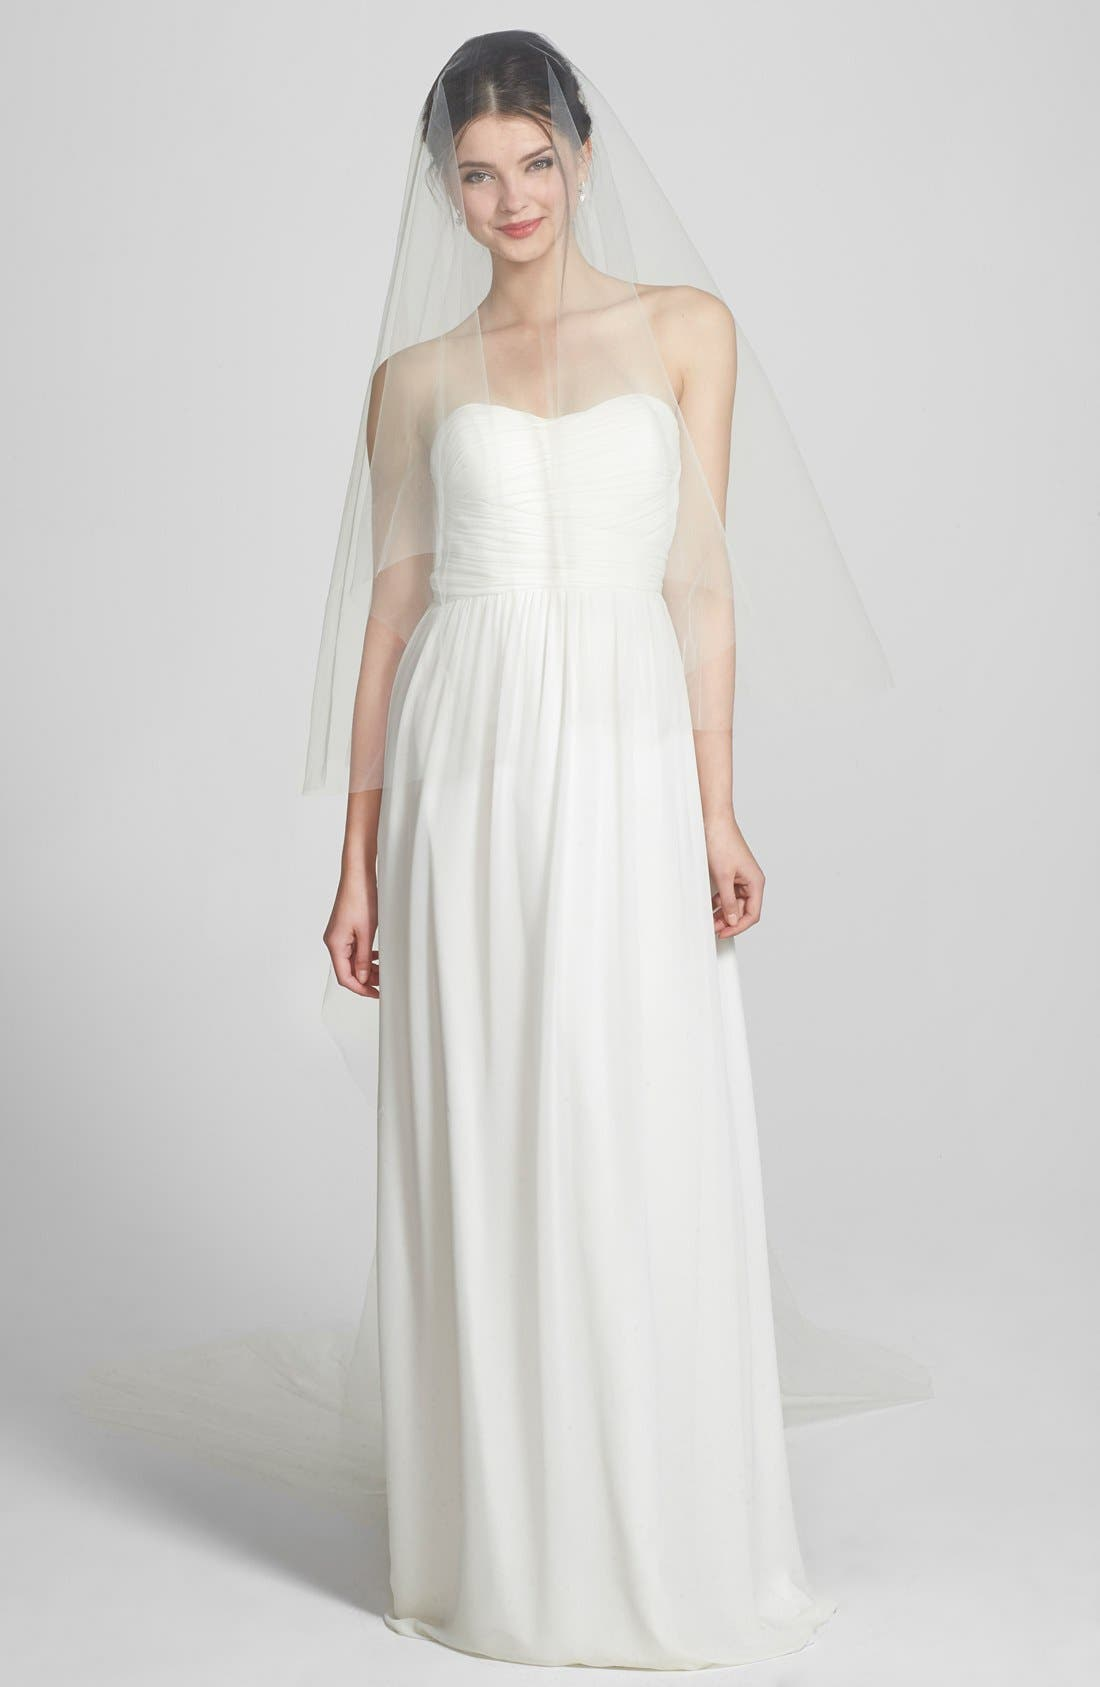 Two-Tier Cathedral Veil,                             Main thumbnail 1, color,                             Ivory